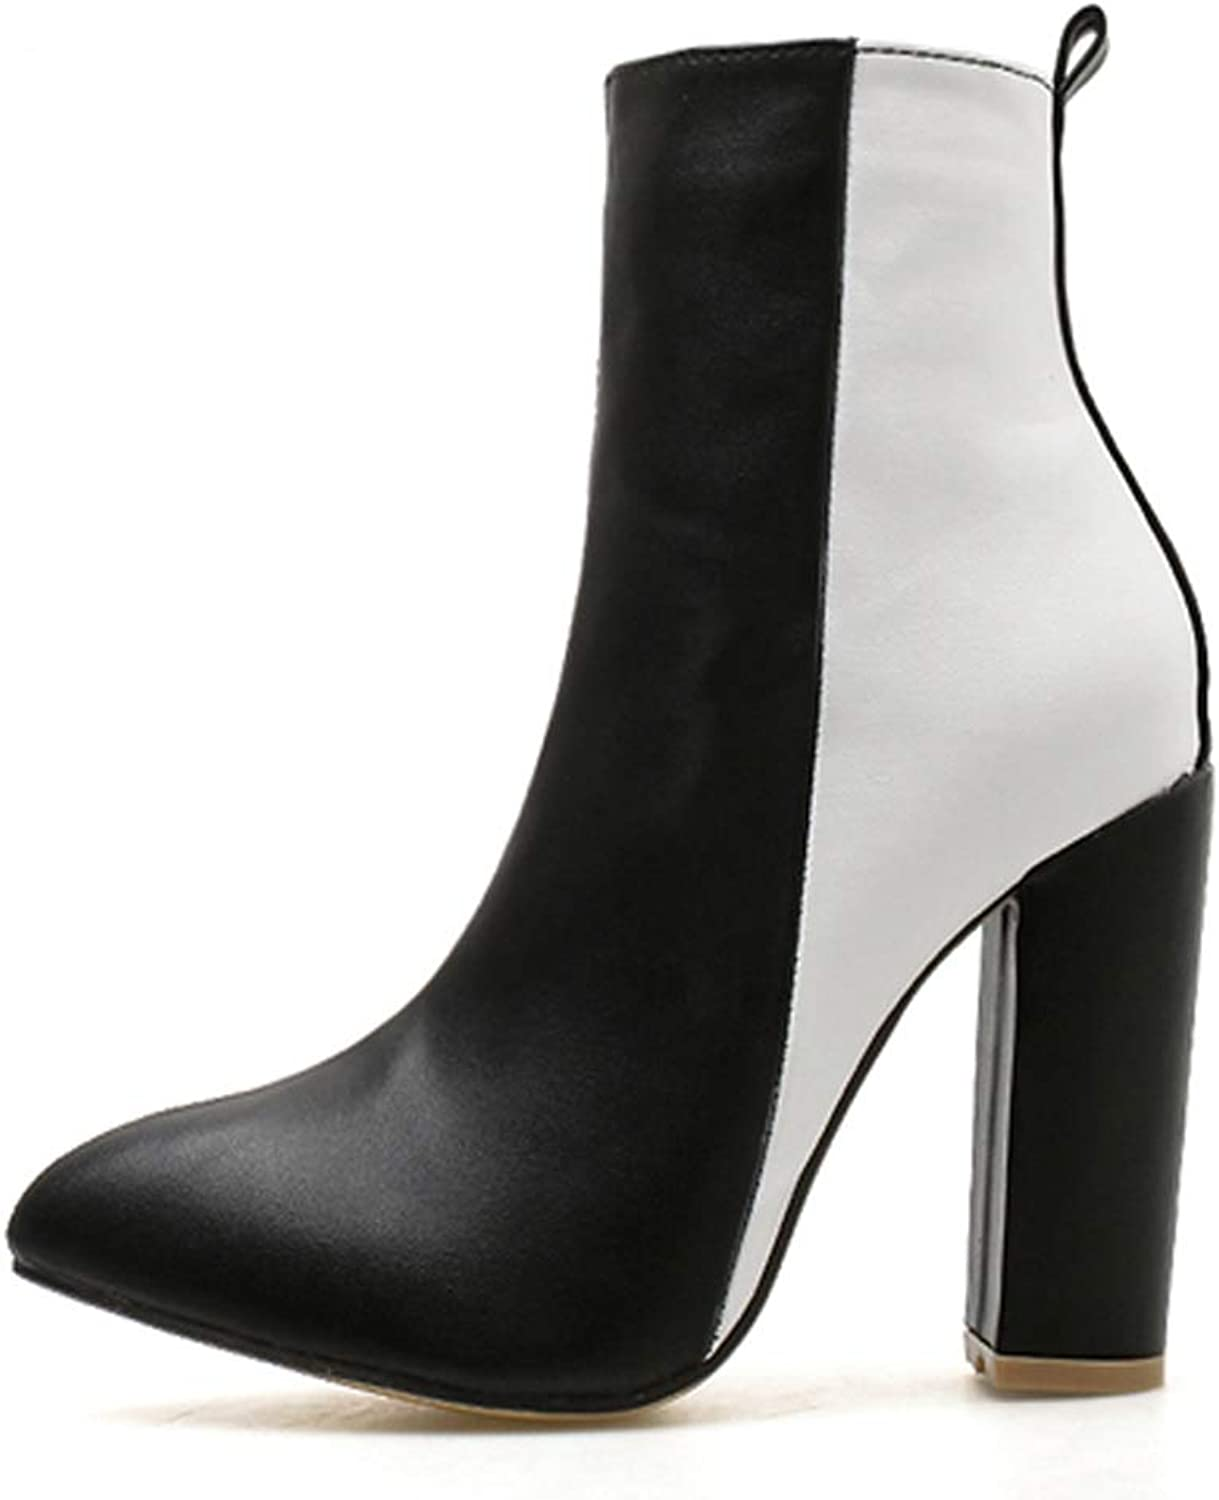 T-JULY Chunky Pointed Toe Zipper Short Winter Booties for Women Boots PU Leather shoes Black High Heel Chelsea Boots Size 35-40